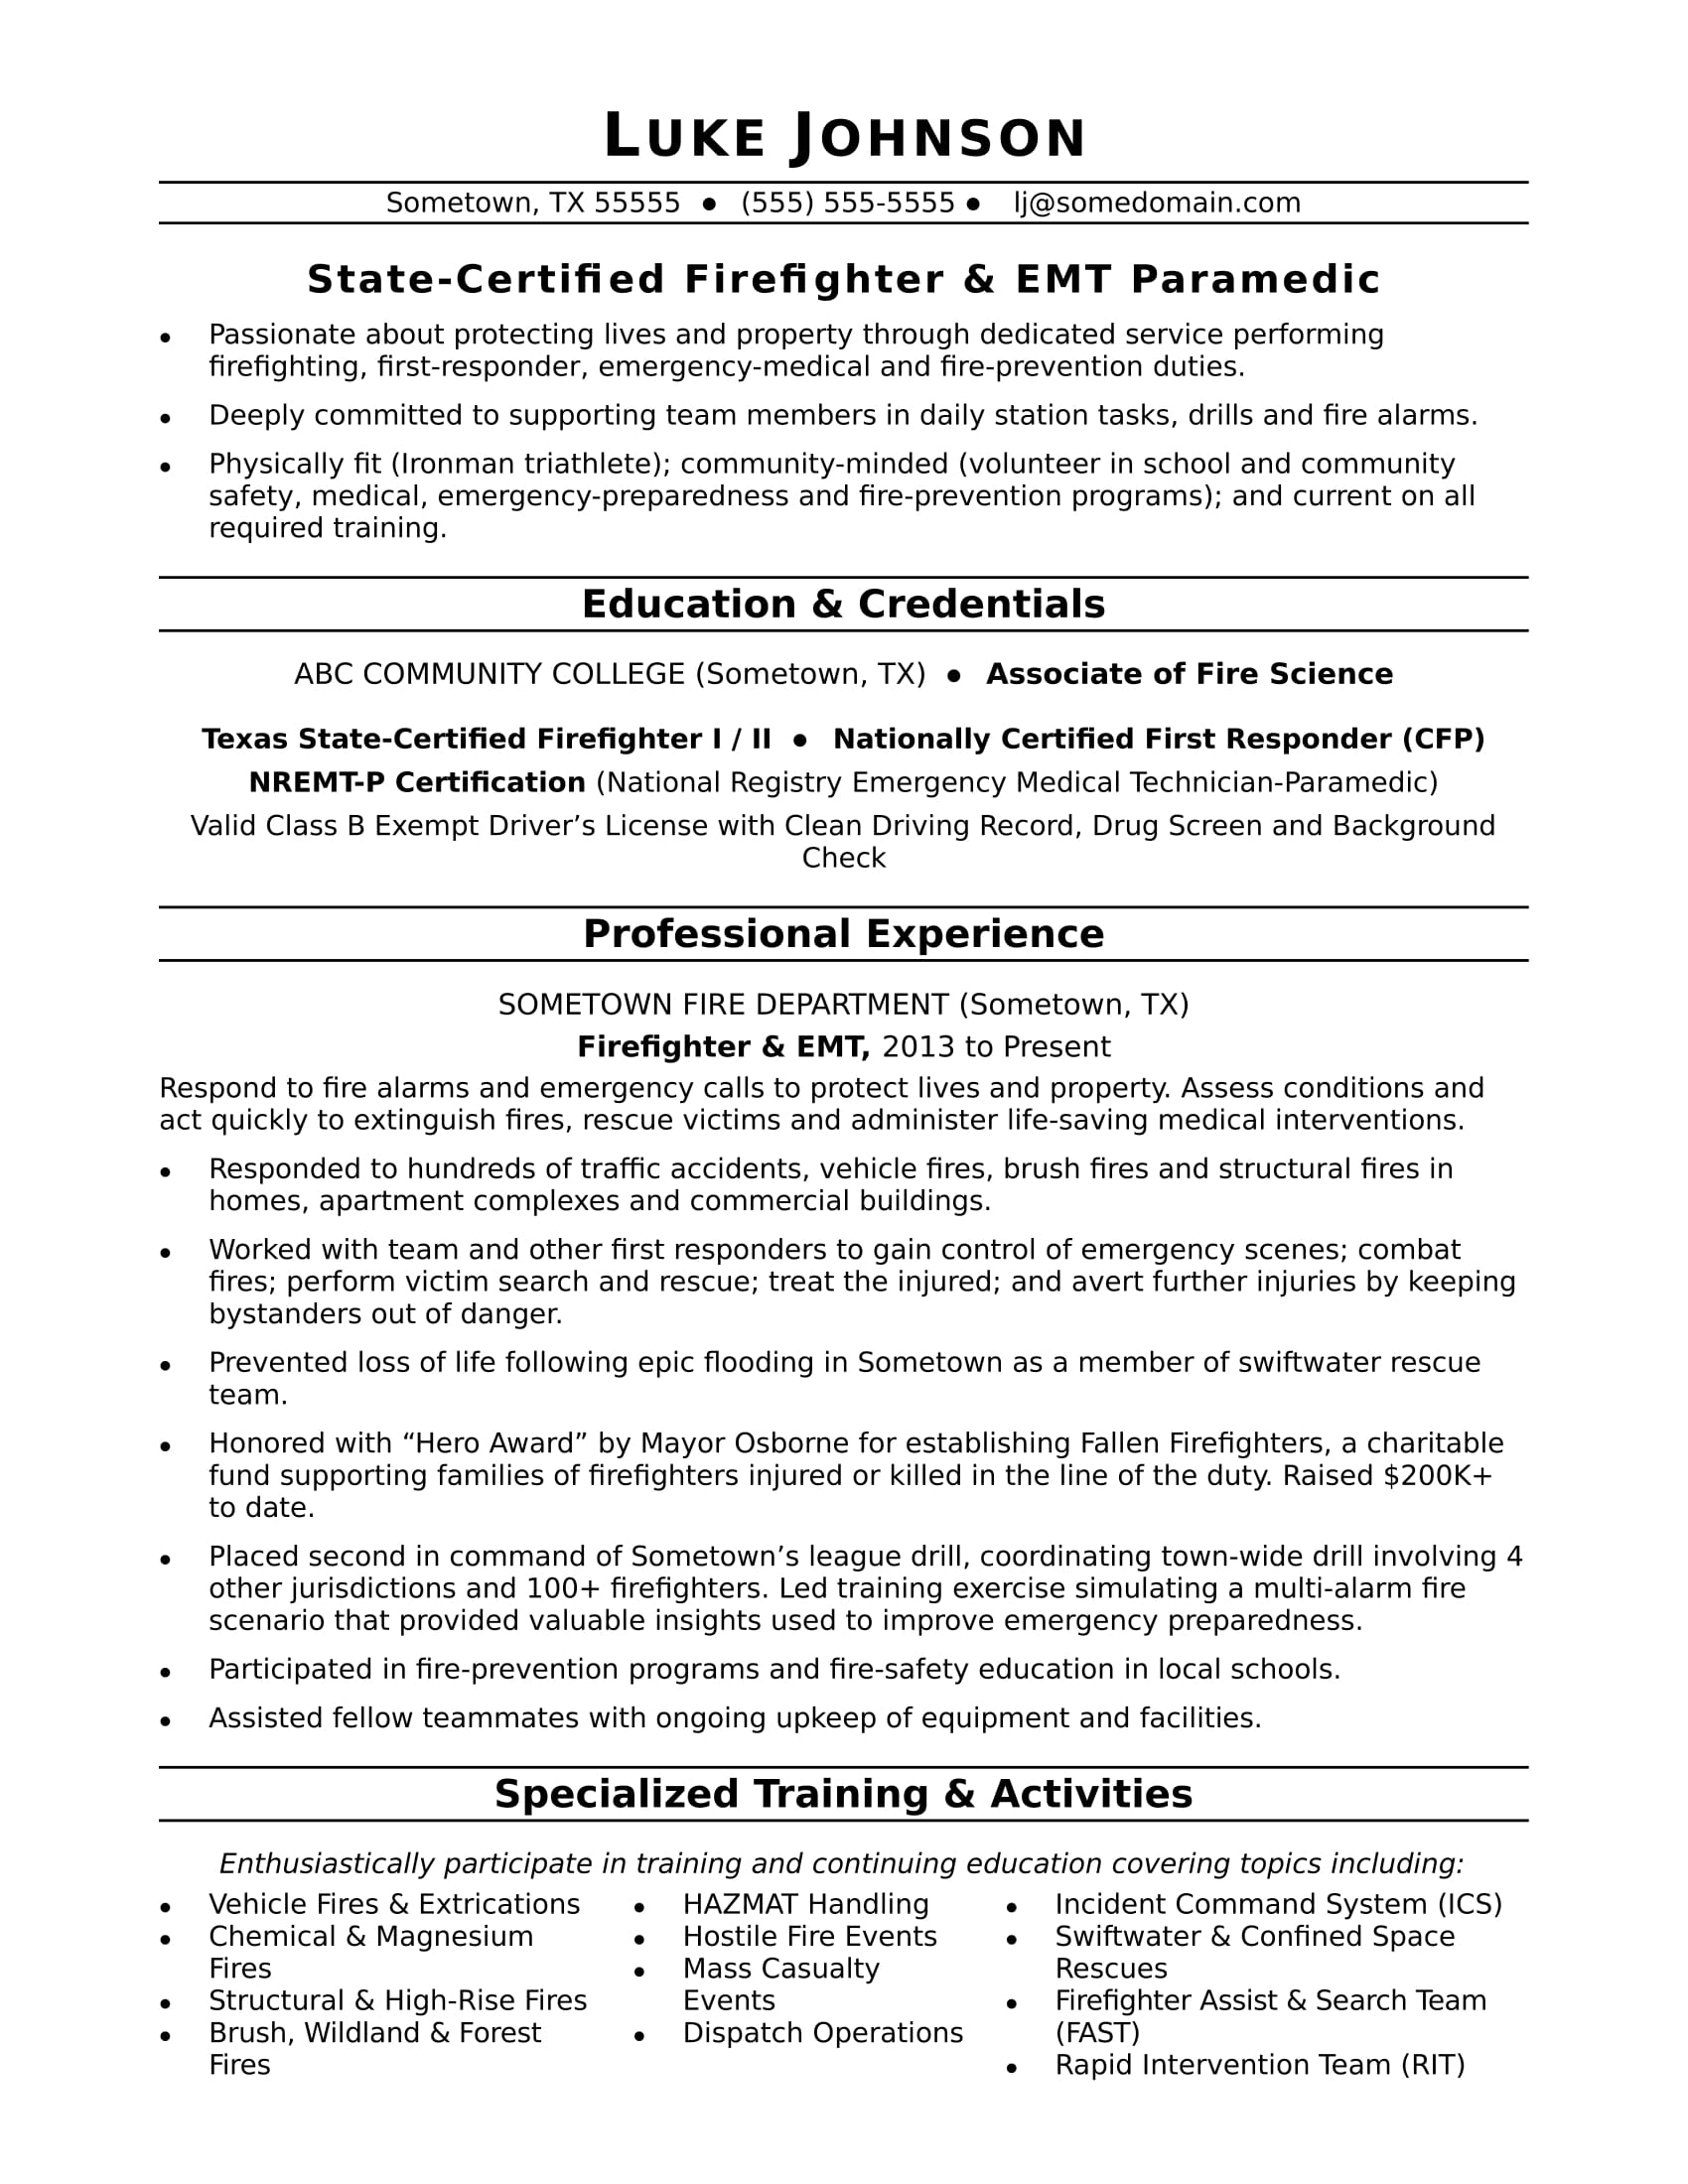 firefighter resume sample monster fire chief objective front office manager sap bods Resume Fire Chief Resume Objective